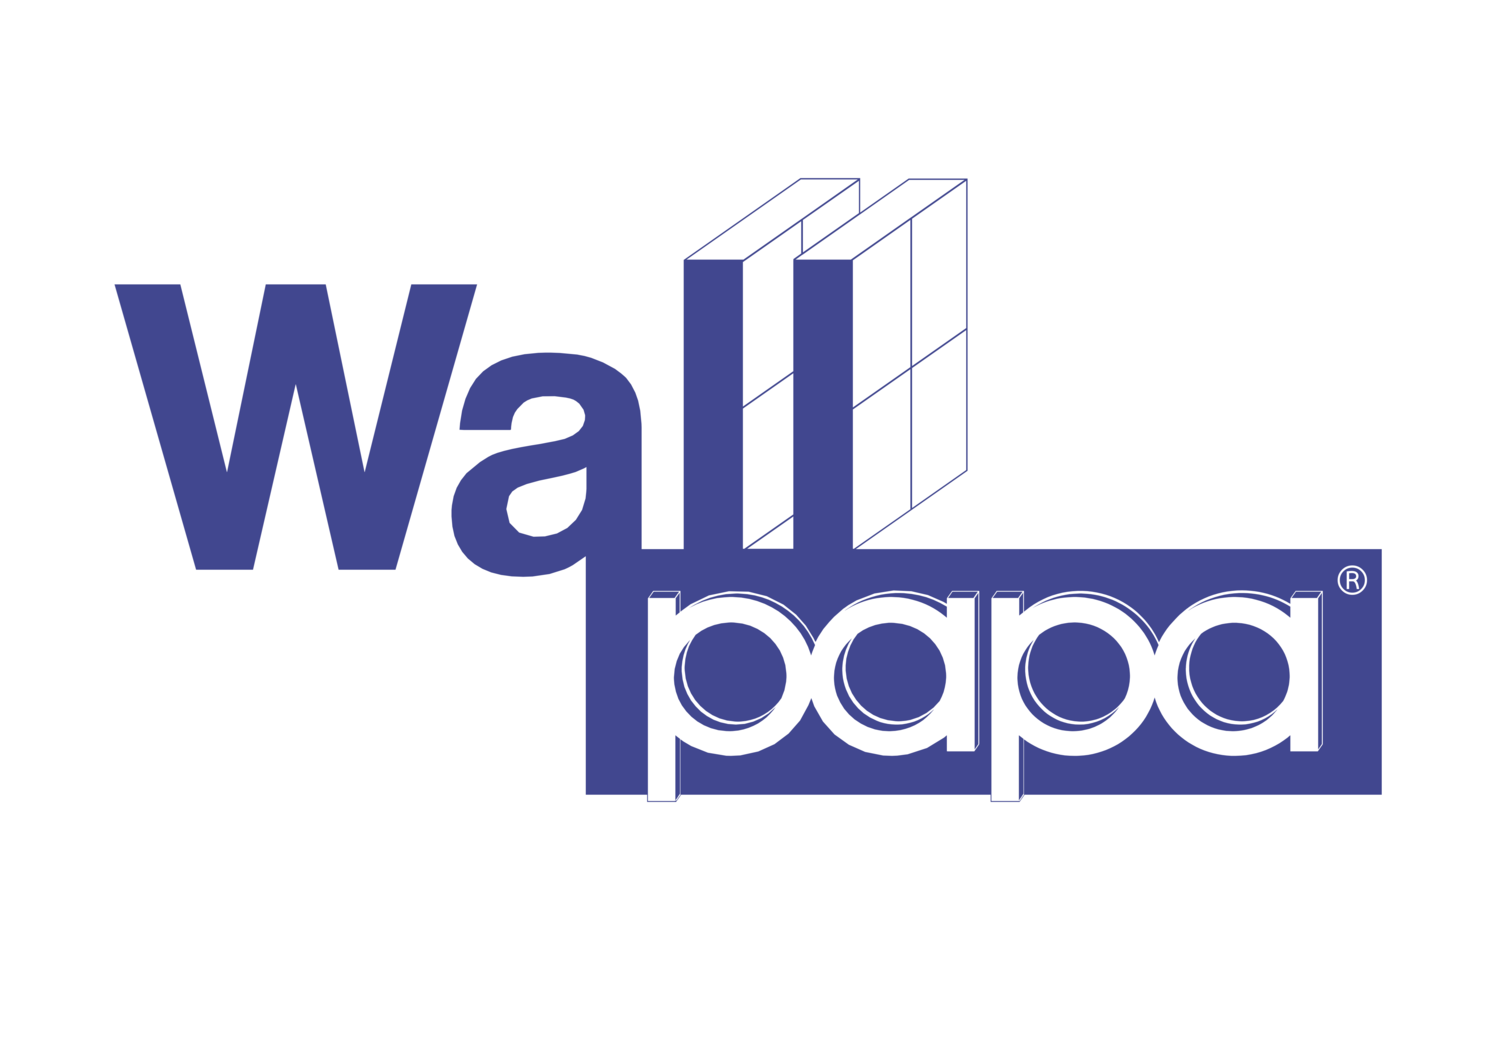 WALLPAPA